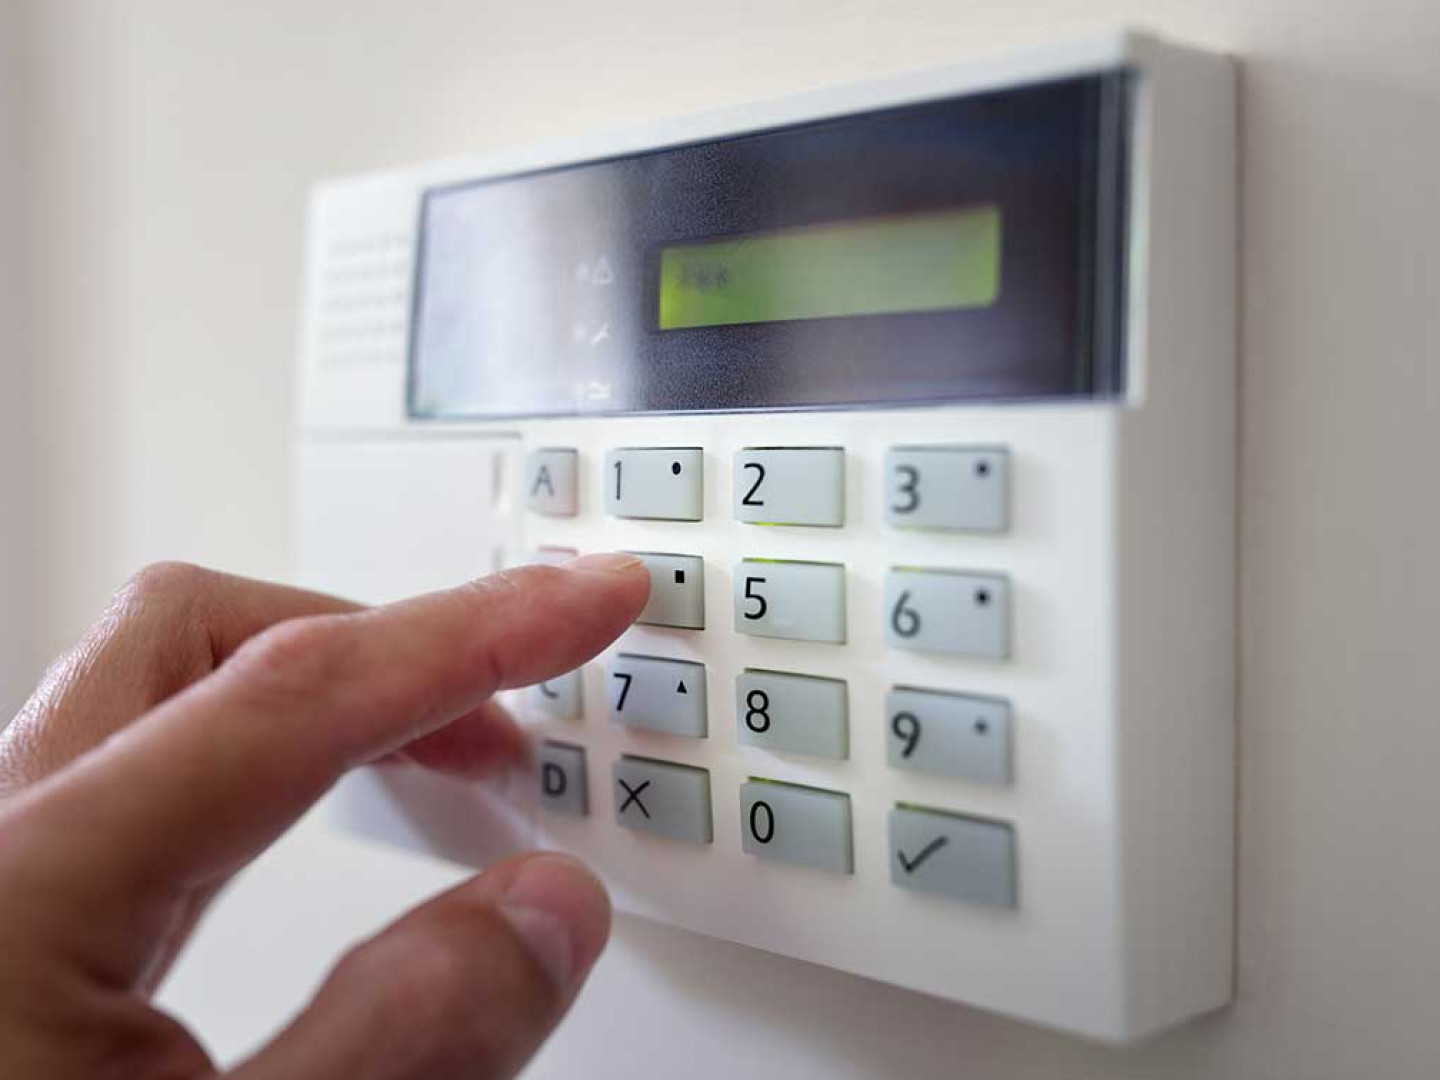 Find a Security Systems Installer in Hot Springs, Benton & Little Rock, AR